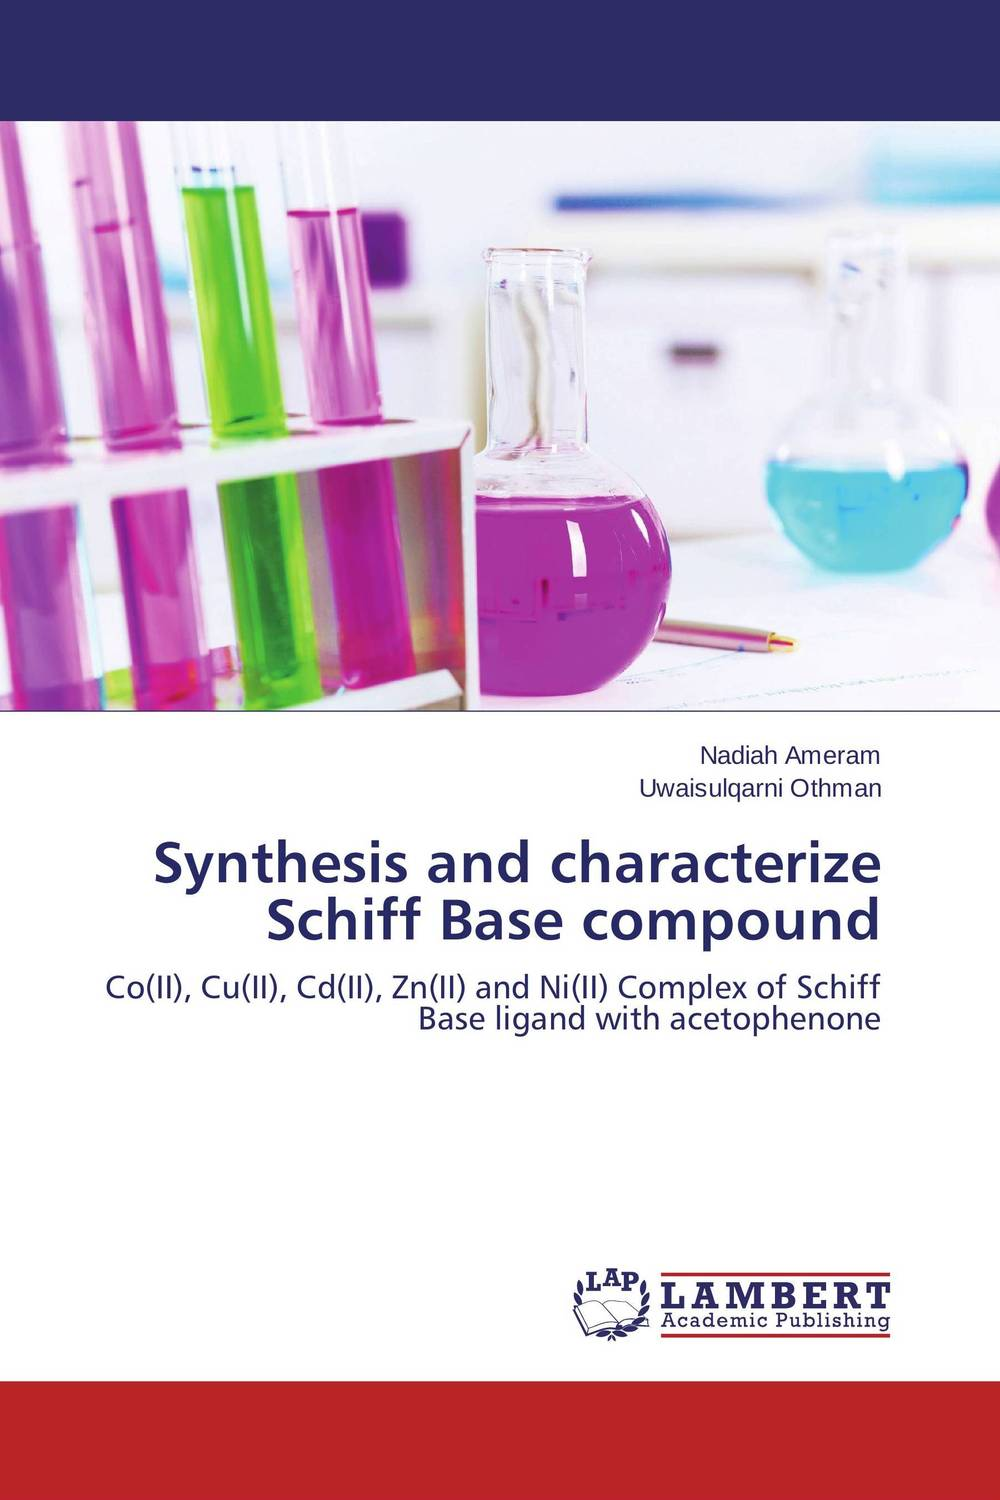 Synthesis and characterize Schiff Base compound d rakesh s s kalyan kamal and sumair faisal ahmed synthesis